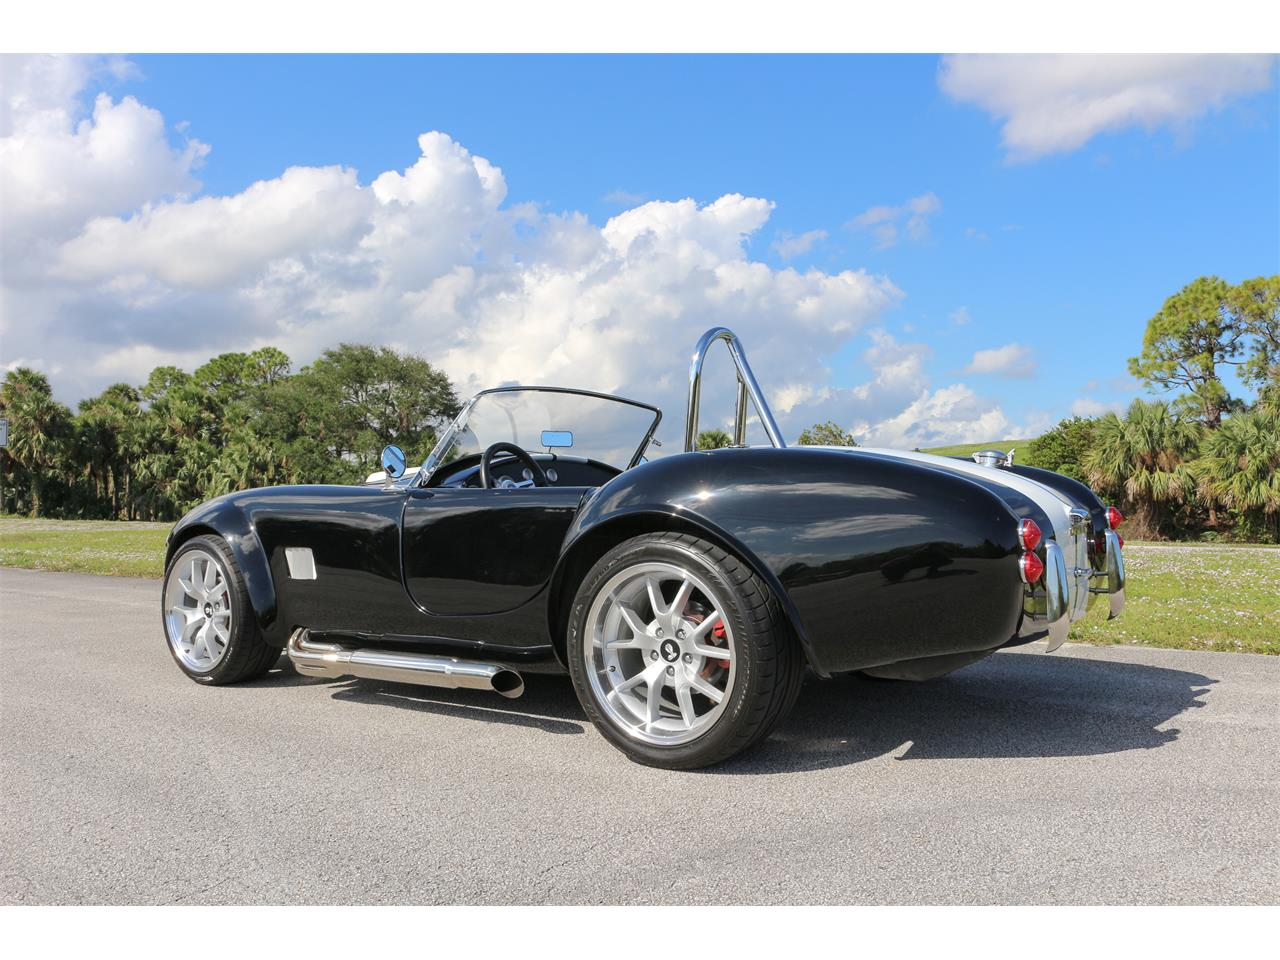 Large Picture of Classic '65 Factory Five Cobra - $39,995.00 Offered by a Private Seller - MDPC